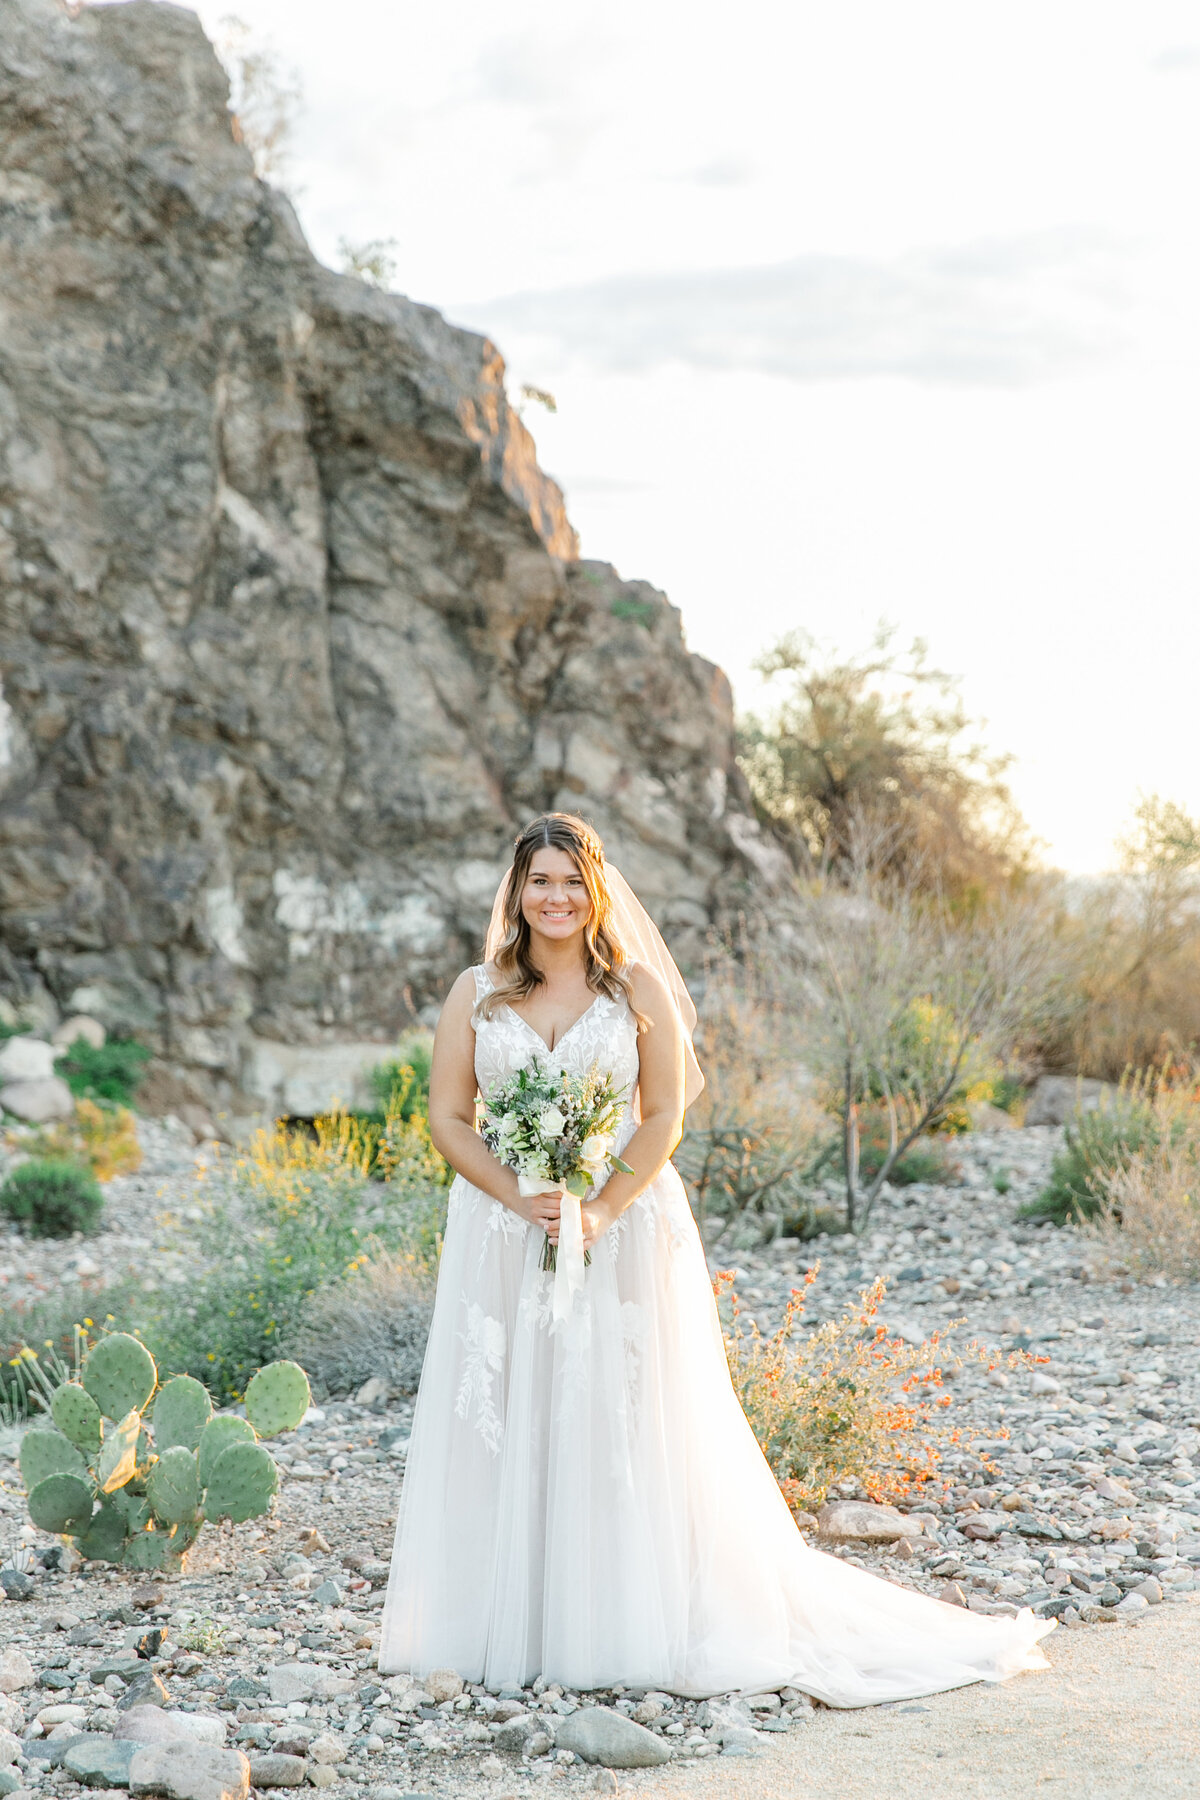 Karlie Colleen Photography - Arizona Backyard wedding - Brittney & Josh-225